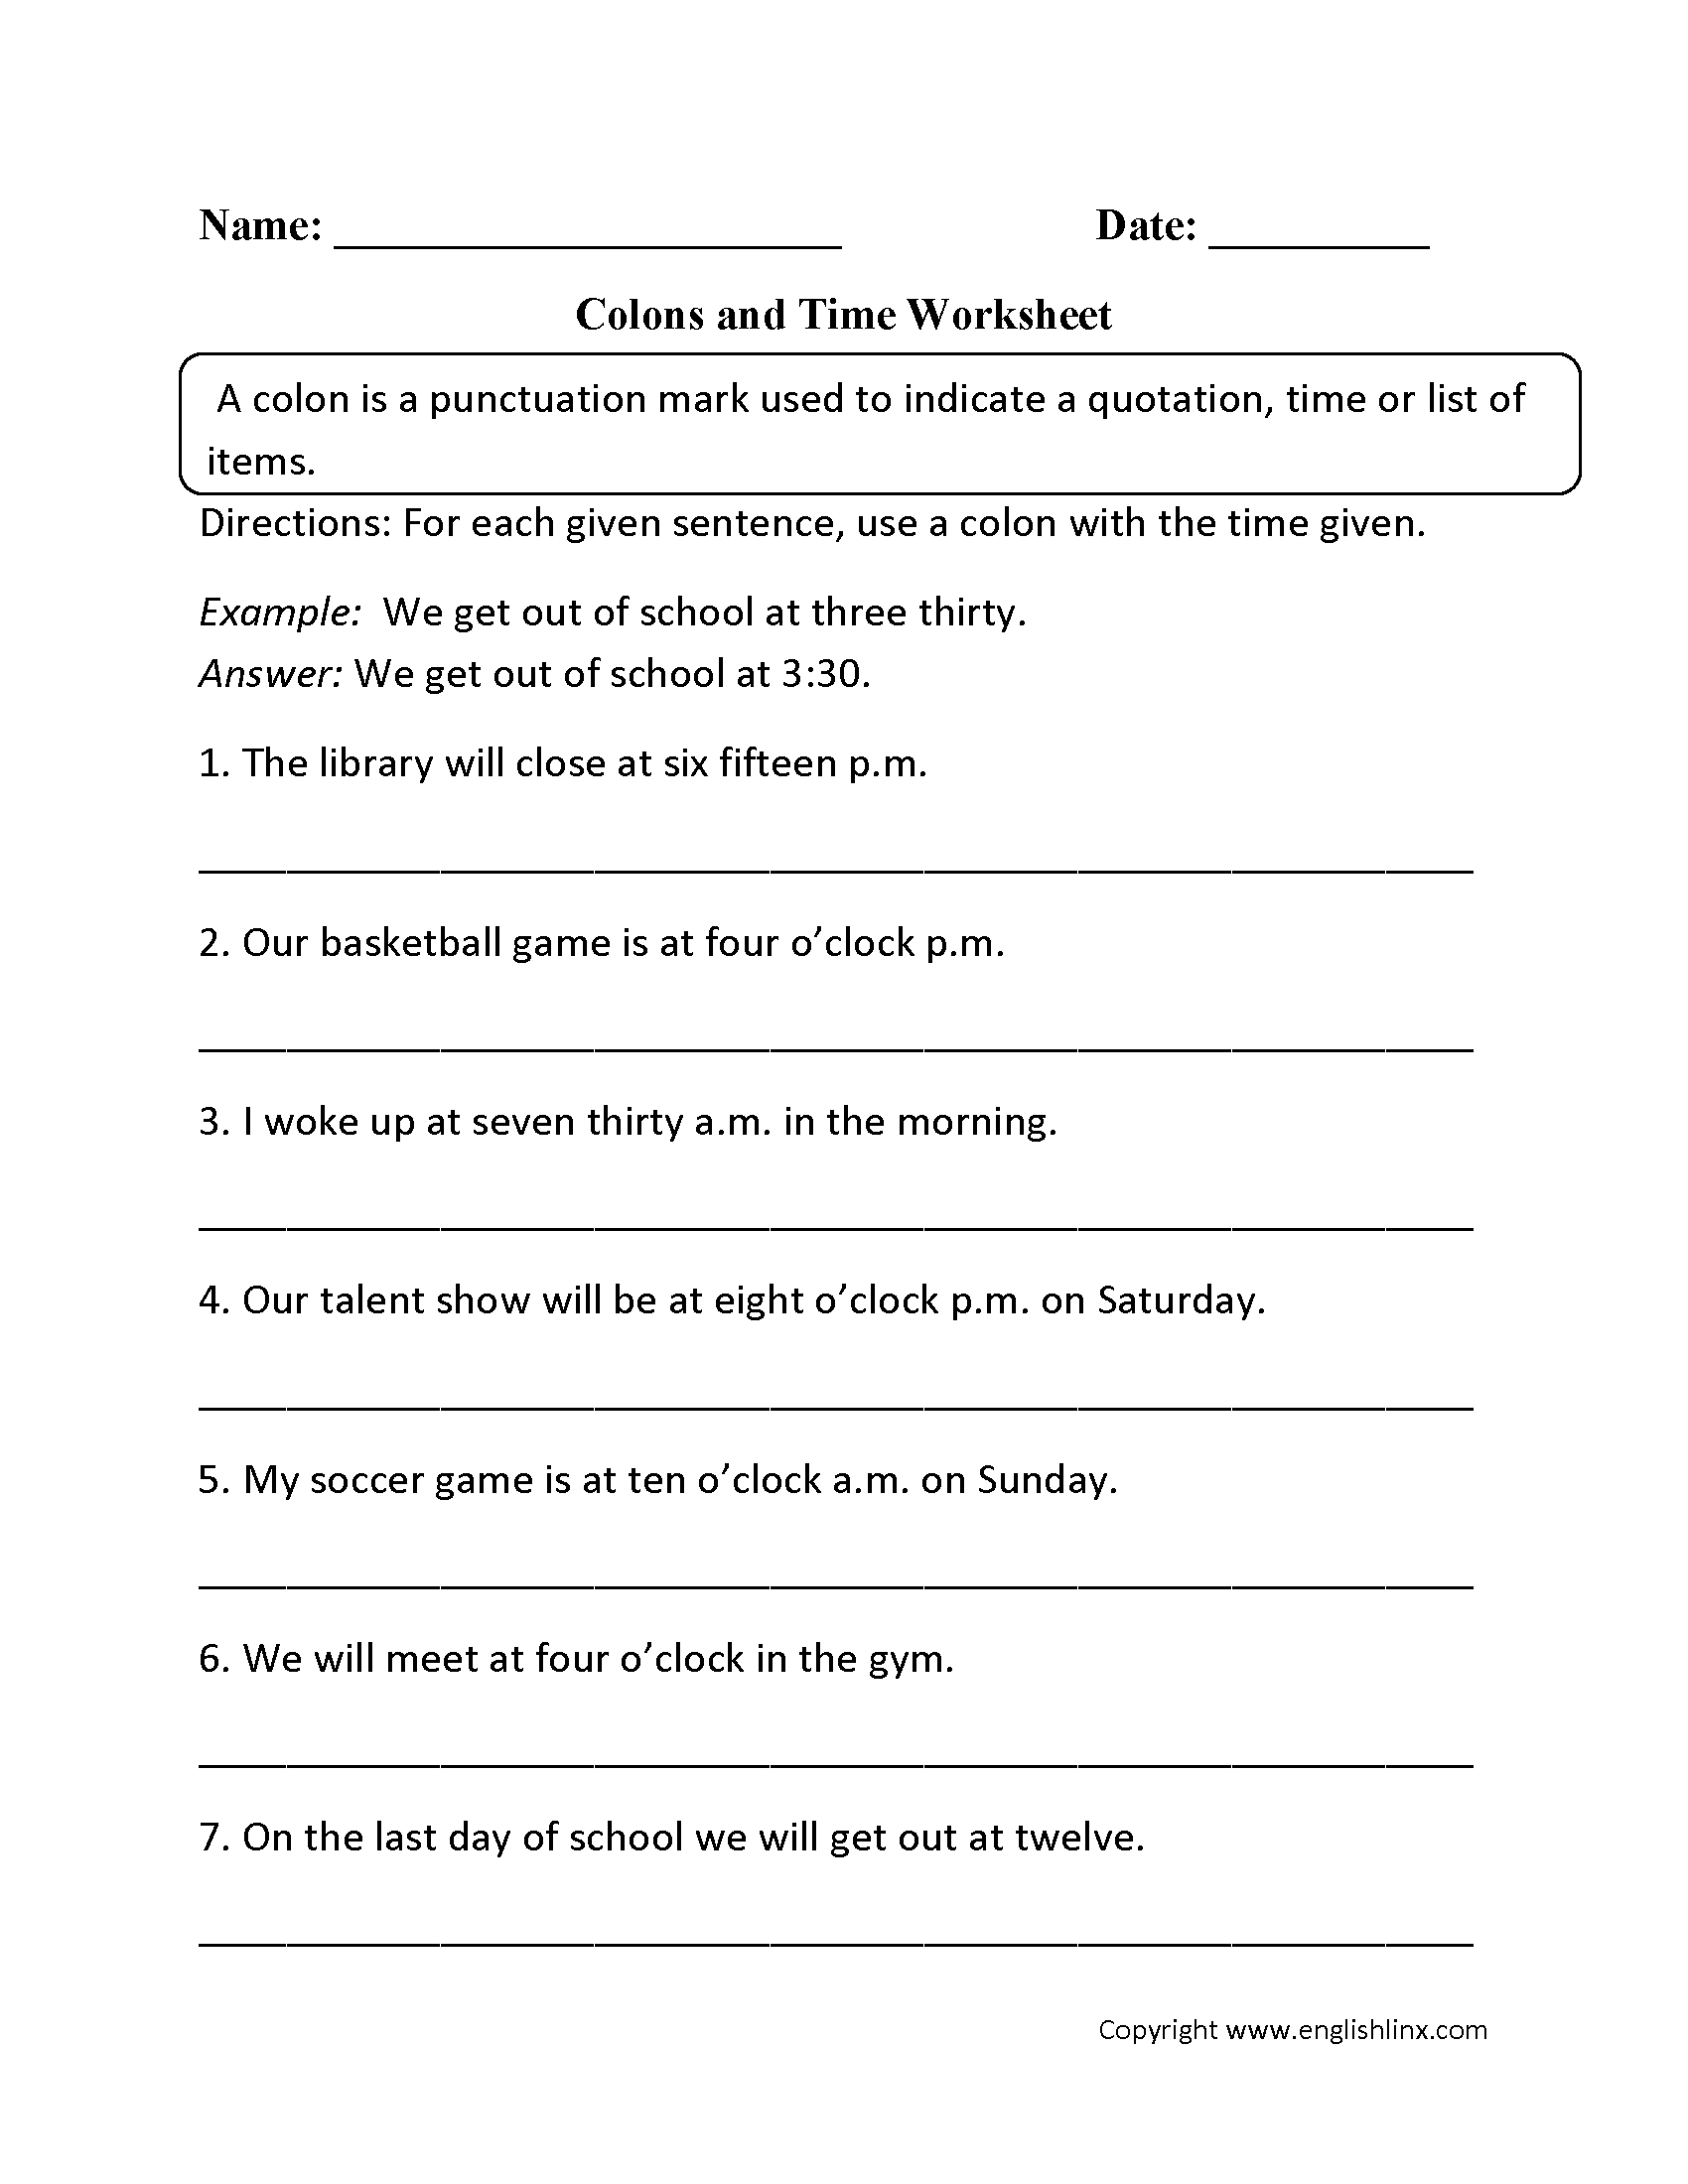 Punctuation Worksheets | Colon Worksheets | Free Printable Punctuation Worksheets For Grade 2